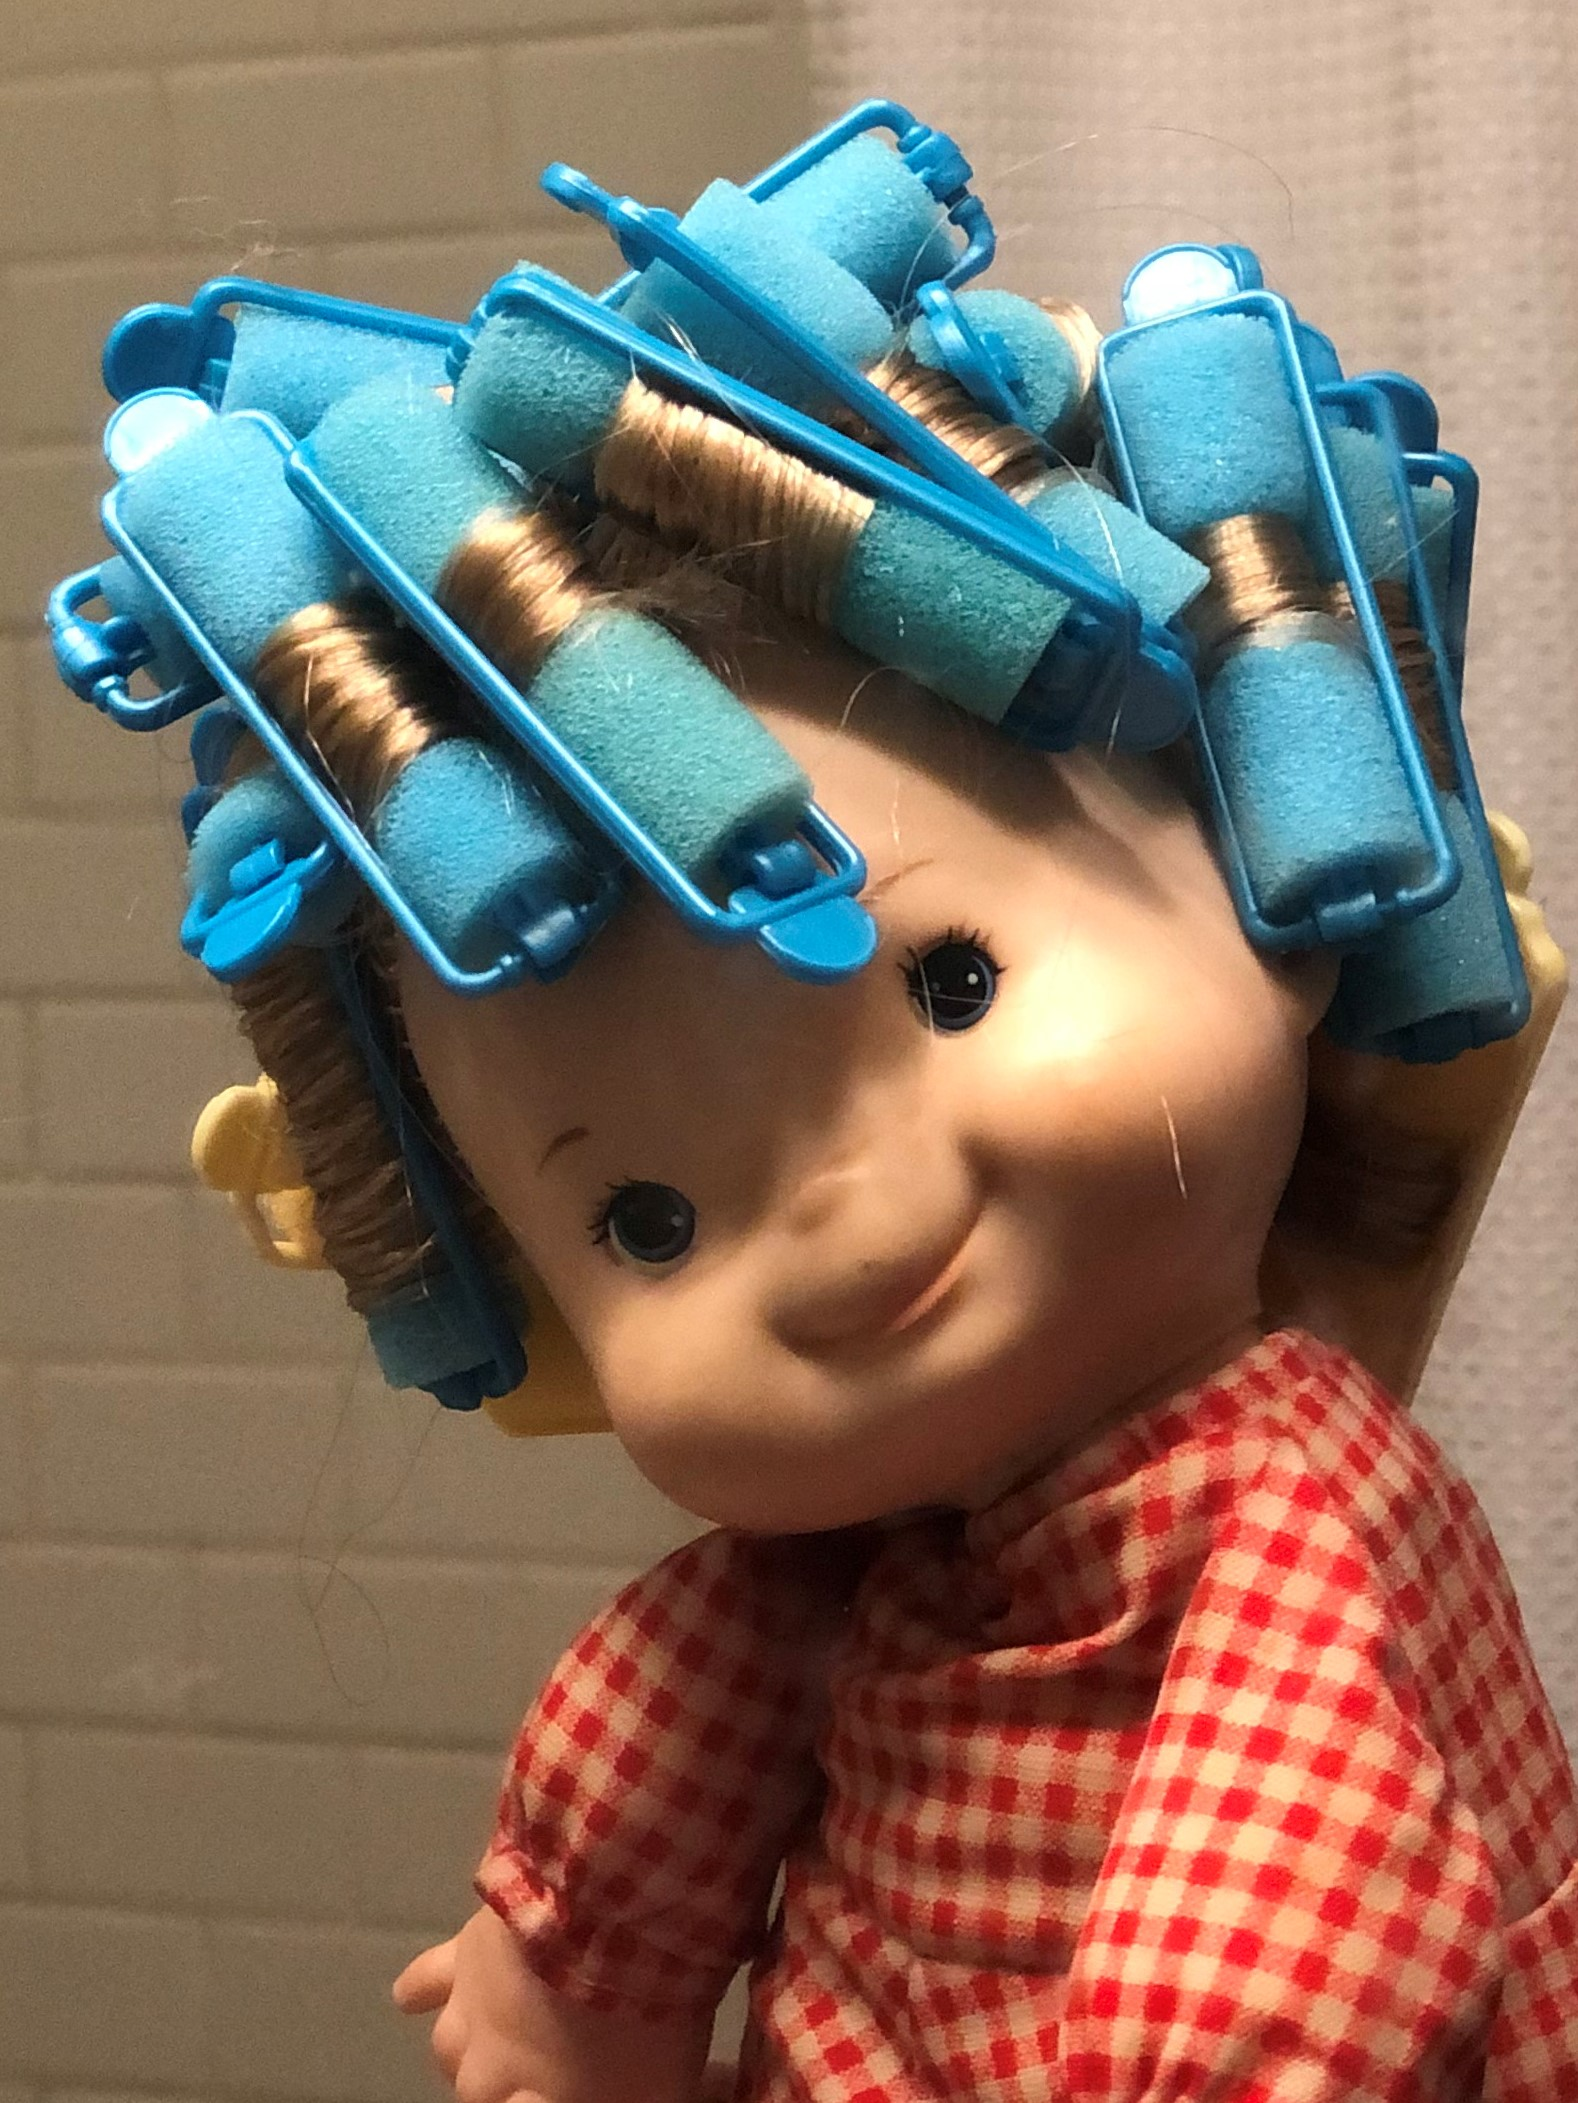 a doll with rollers in her hair